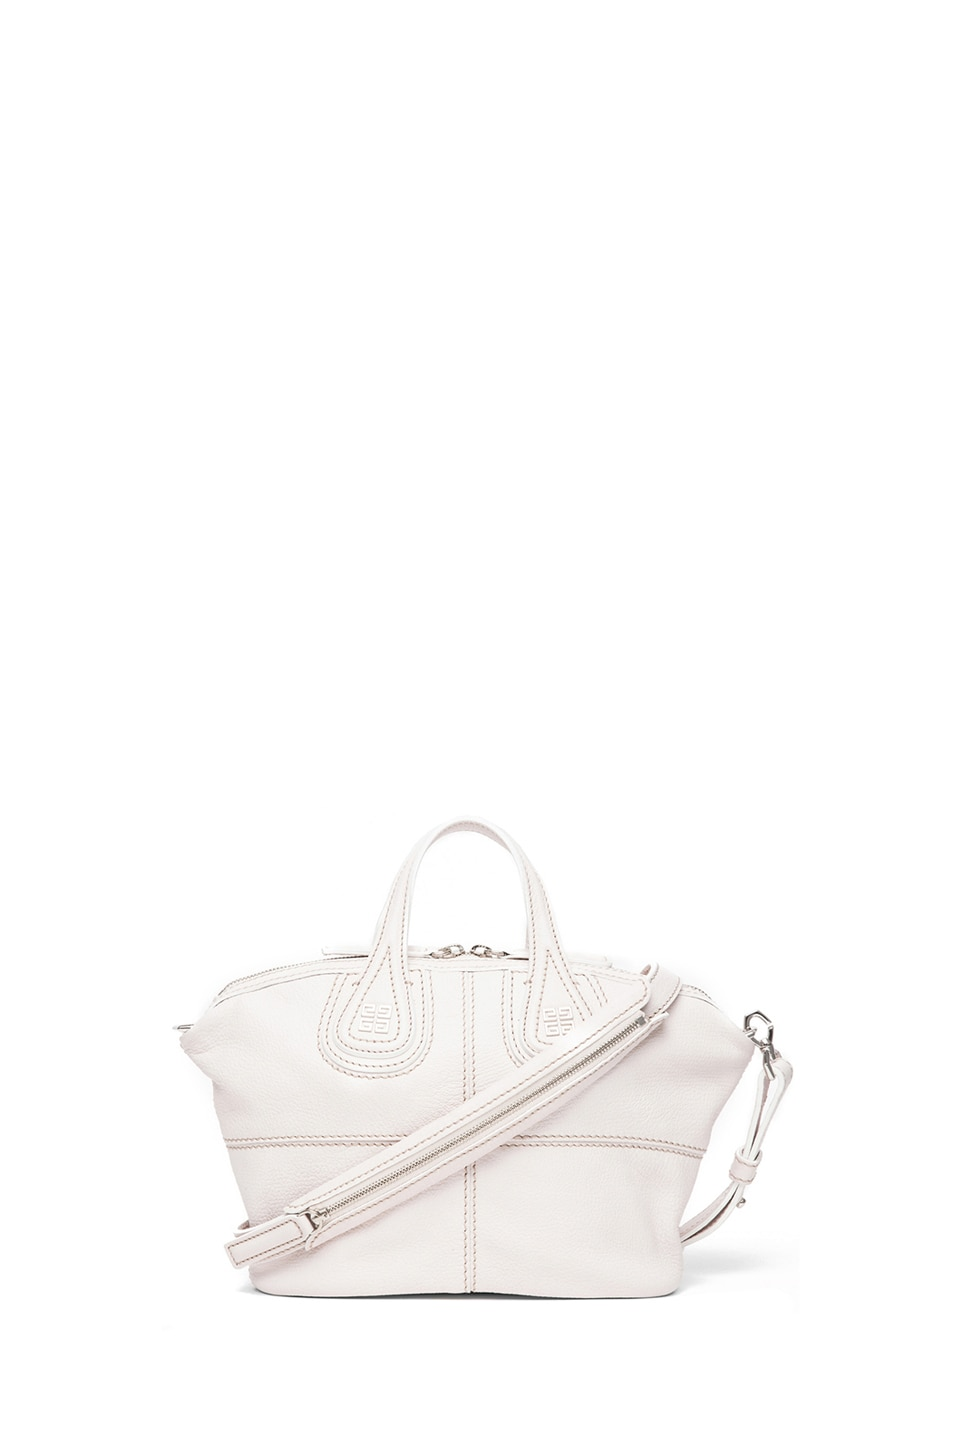 Image 1 of GIVENCHY Micro Nightingale in Ivory